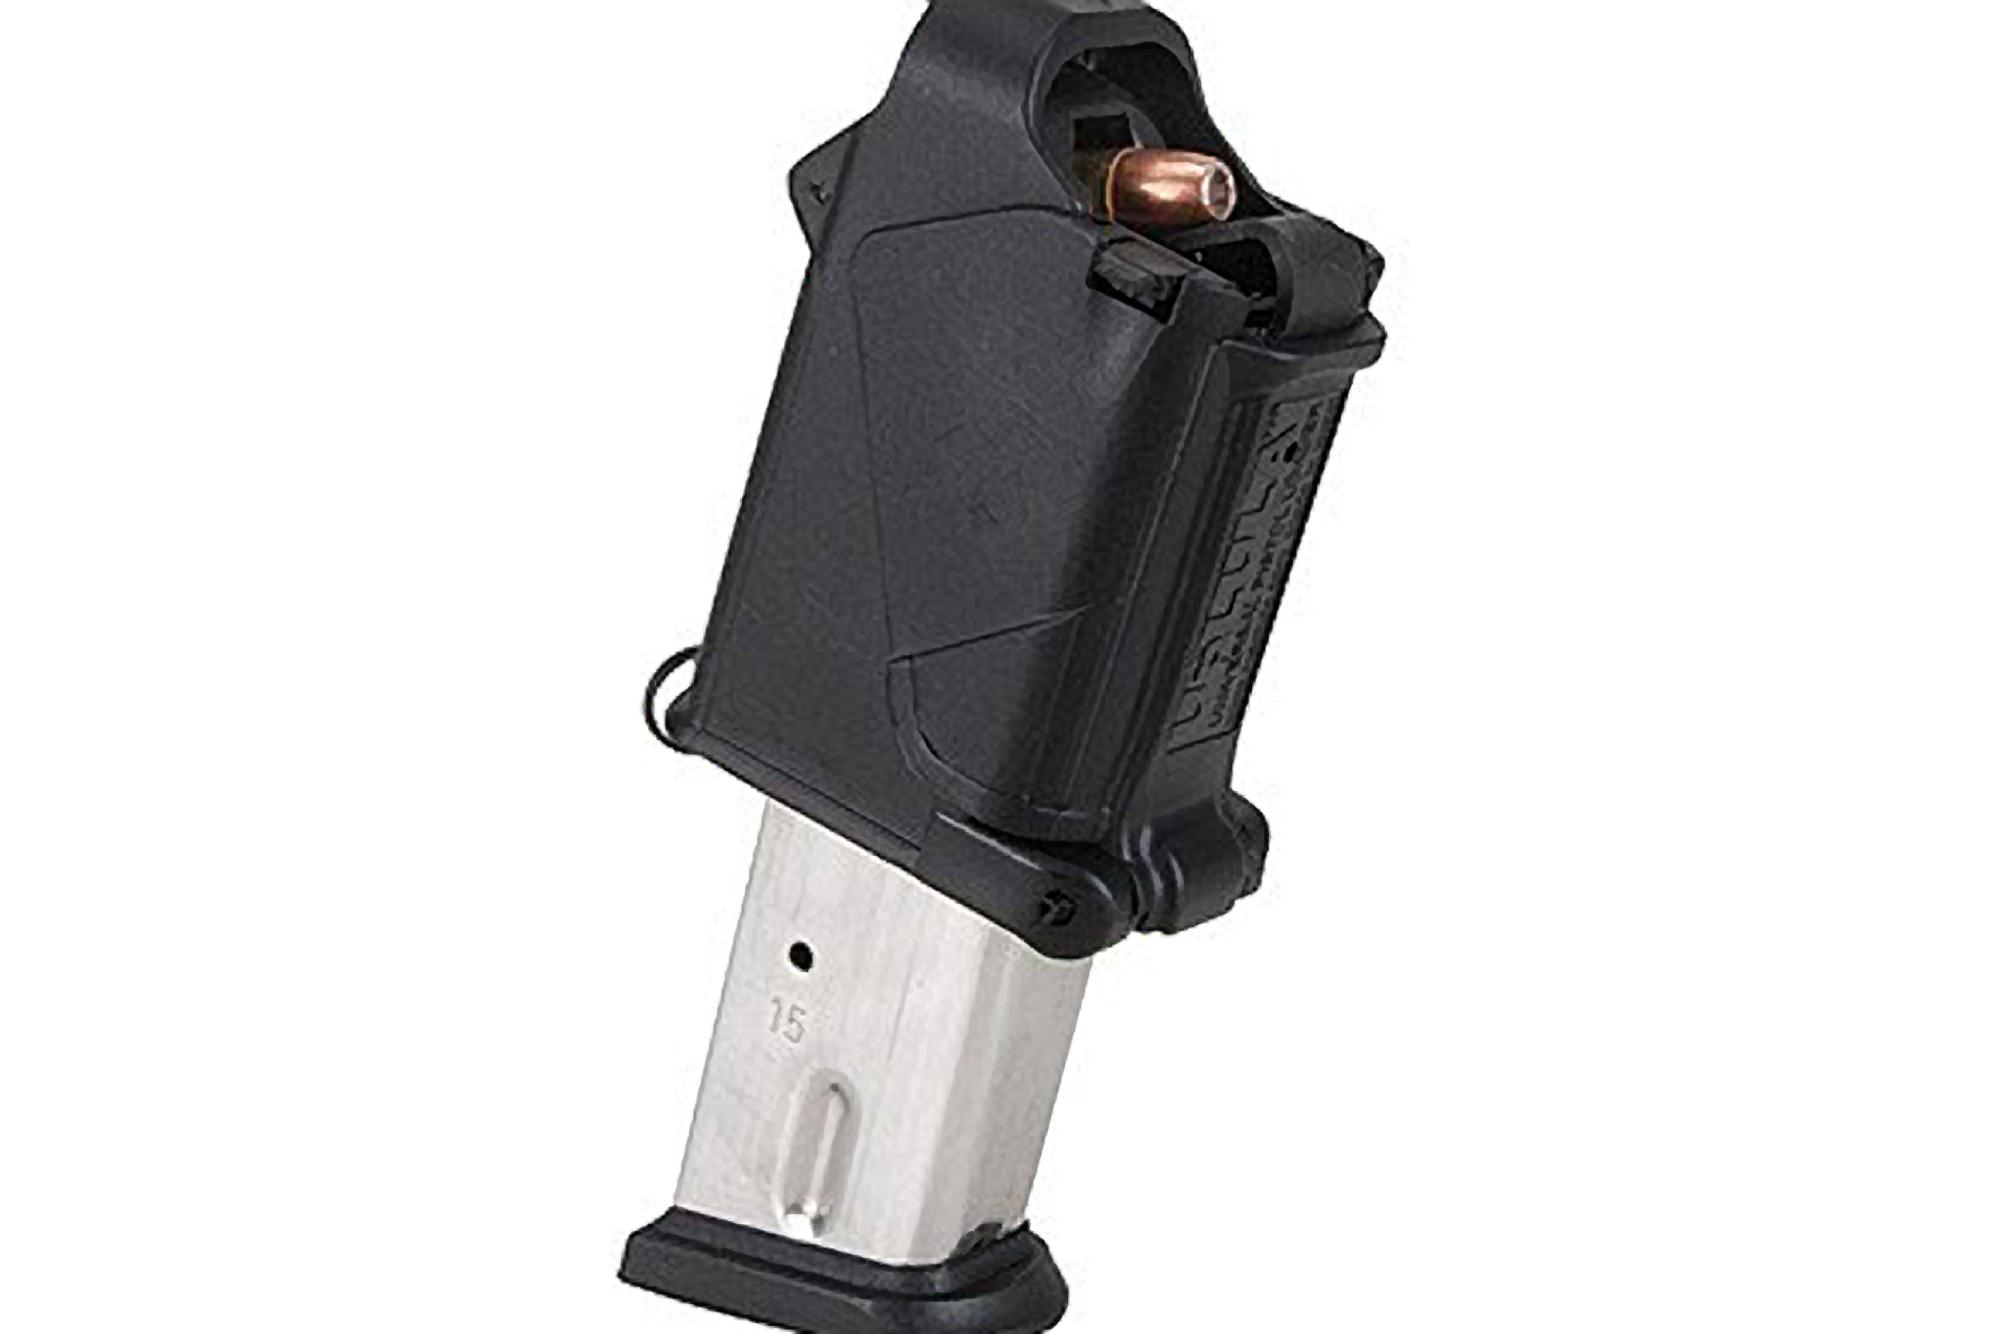 The Black Maglula UpLULA Universal Pistol Magazine Loader is compatible with 9mm up to .45 ACP double stack magazines